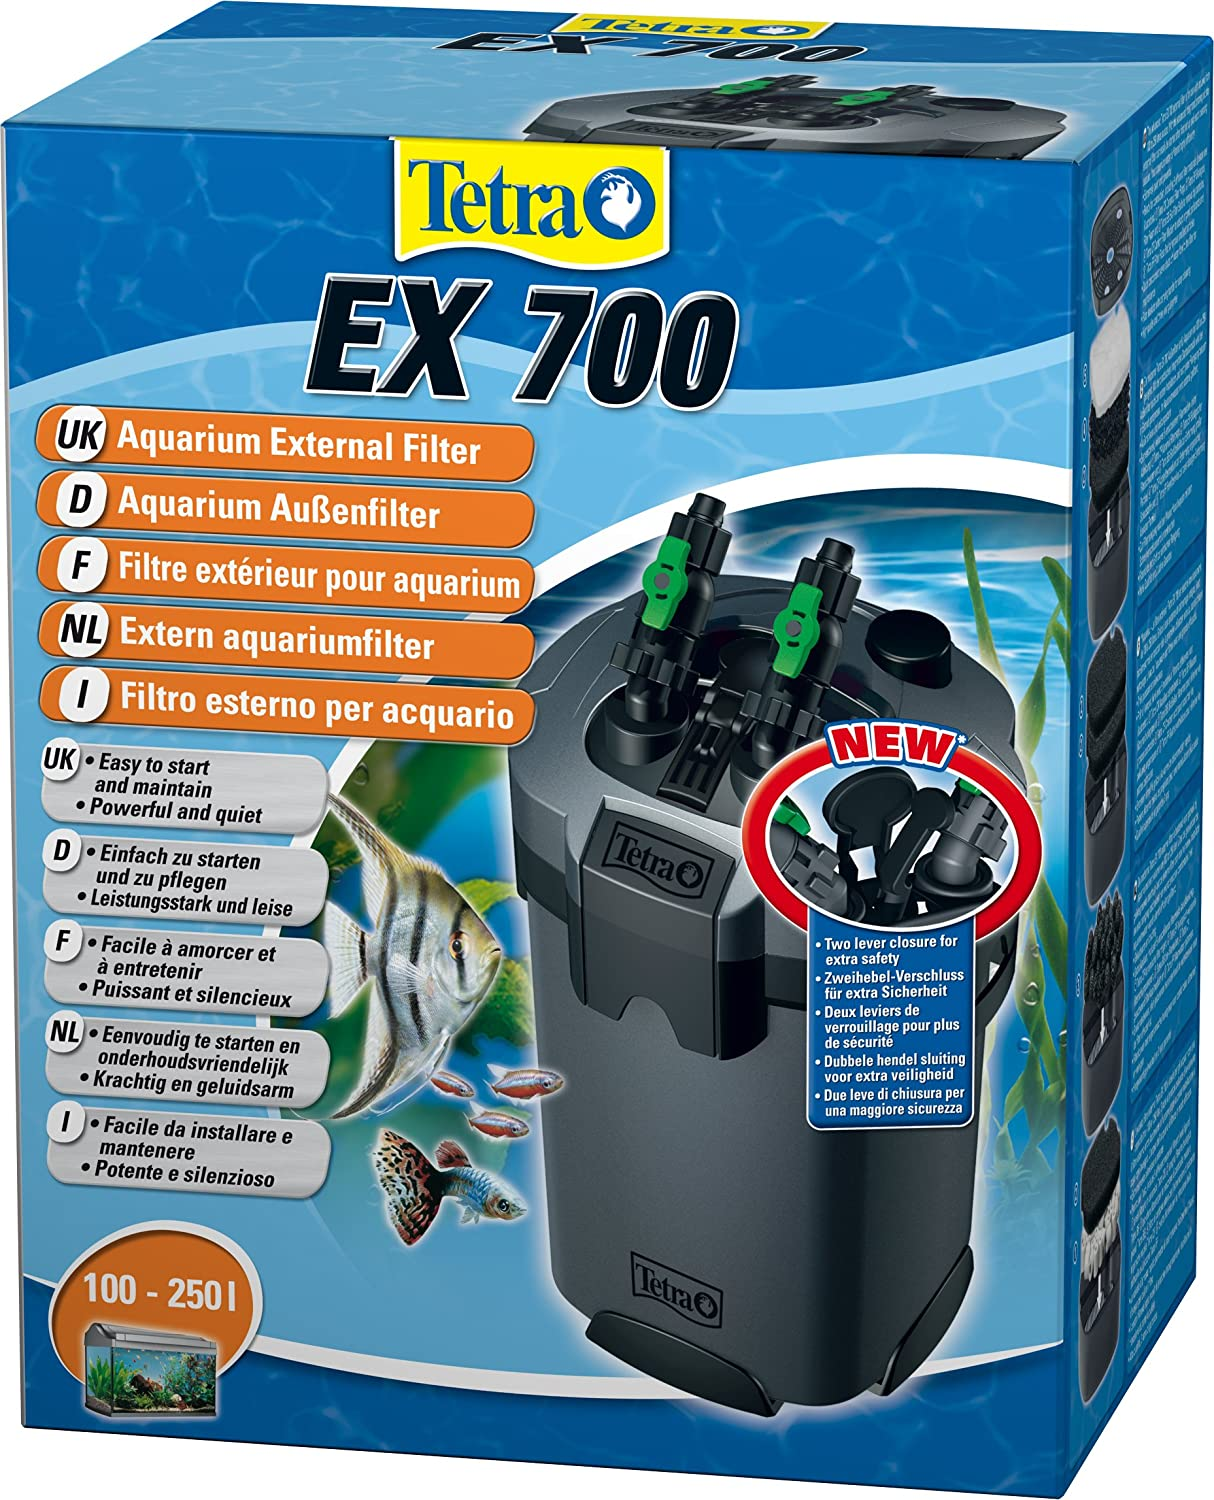 91ri1lf9JjL._SL1500_ tetra tec ex 700 external filter amazon co uk pet supplies  at readyjetset.co